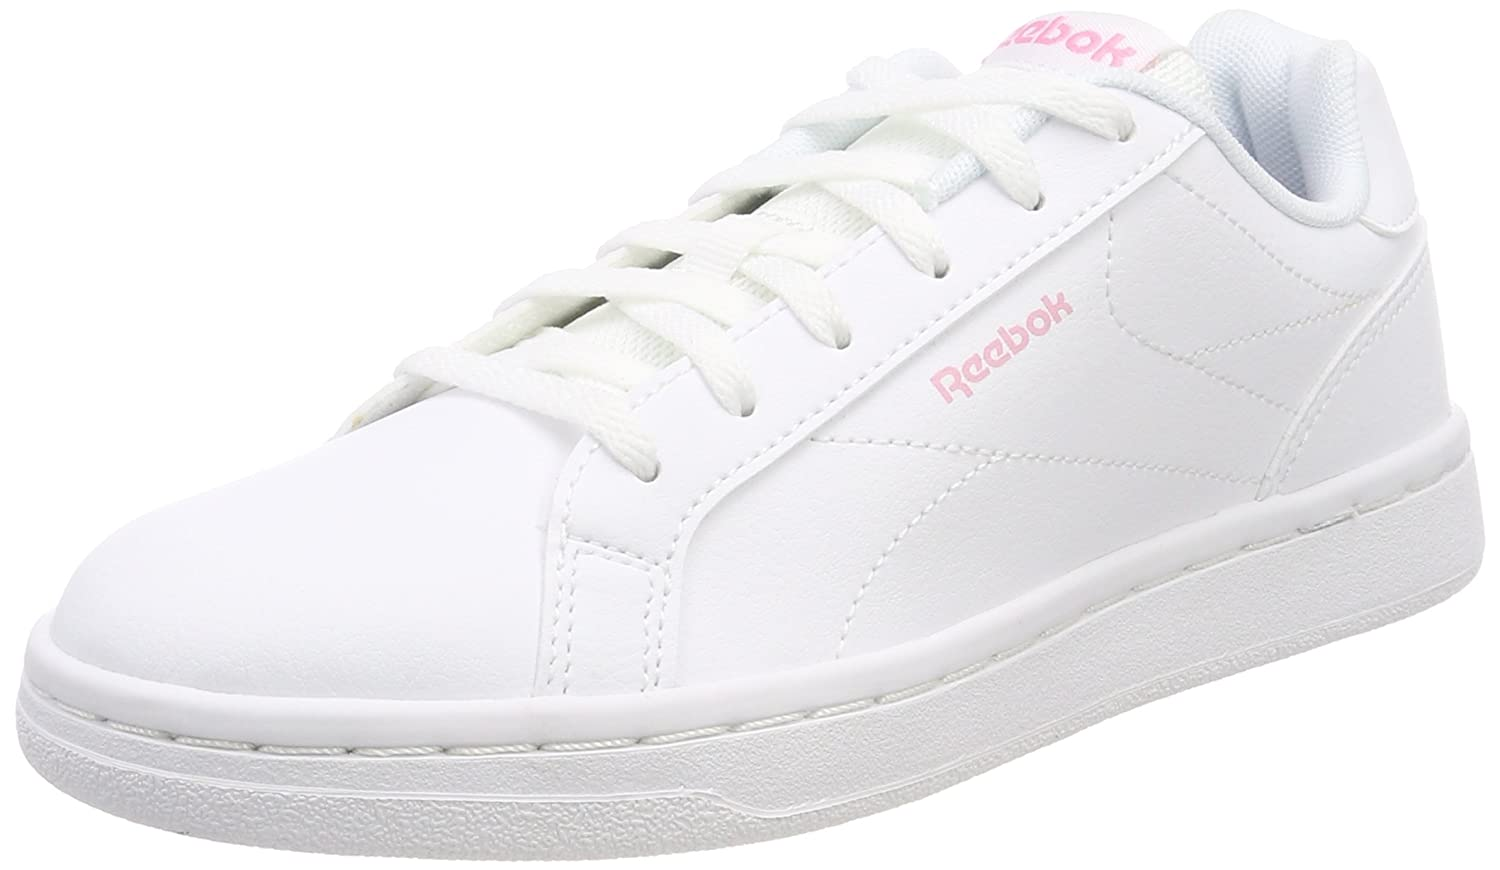 d27c9137fd2a Reebok Women s Royal Complete CLN Gymnastics Shoes White (White Light Pink  White Light Pink) 8.5 UK  Buy Online at Low Prices in India - Amazon.in